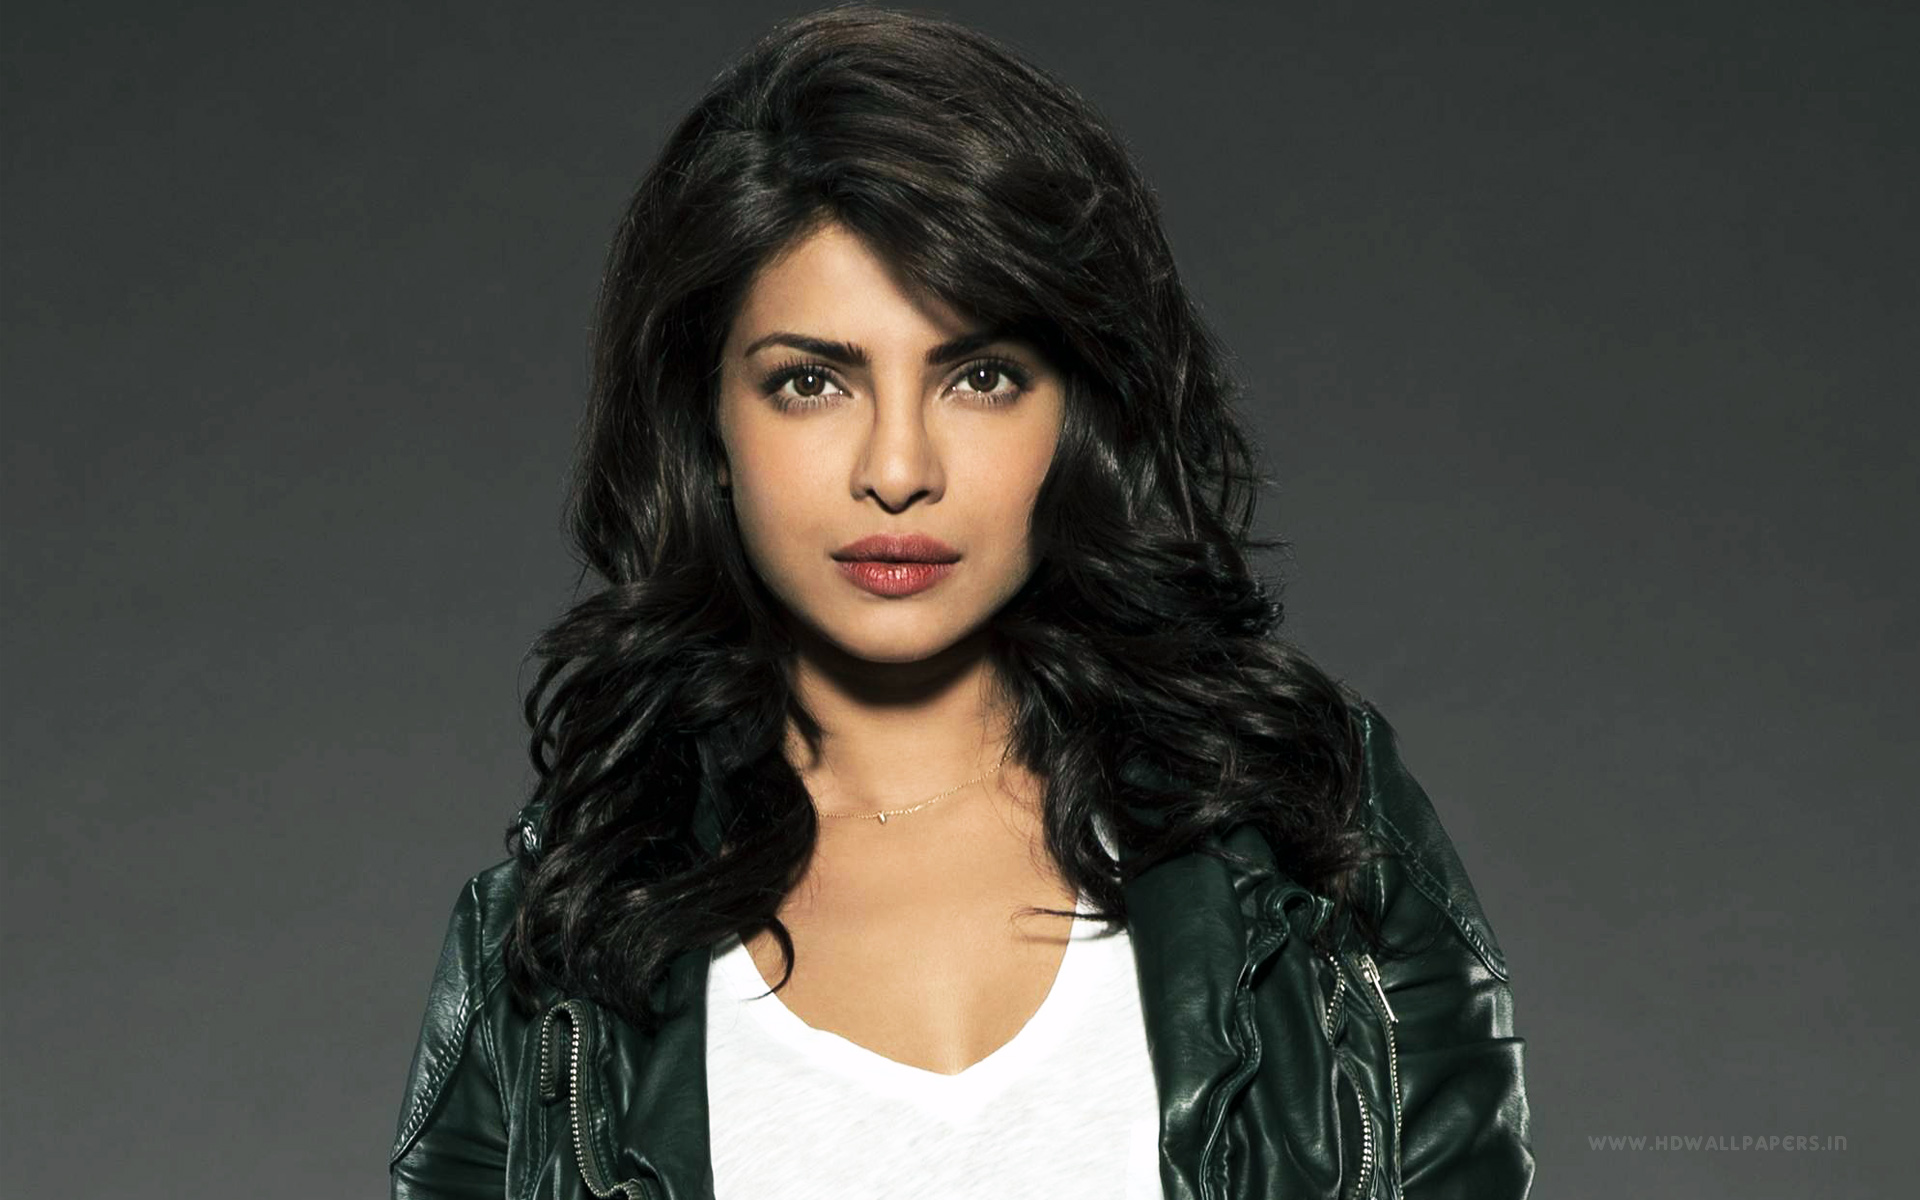 priyanka chopra new hd wallpapers